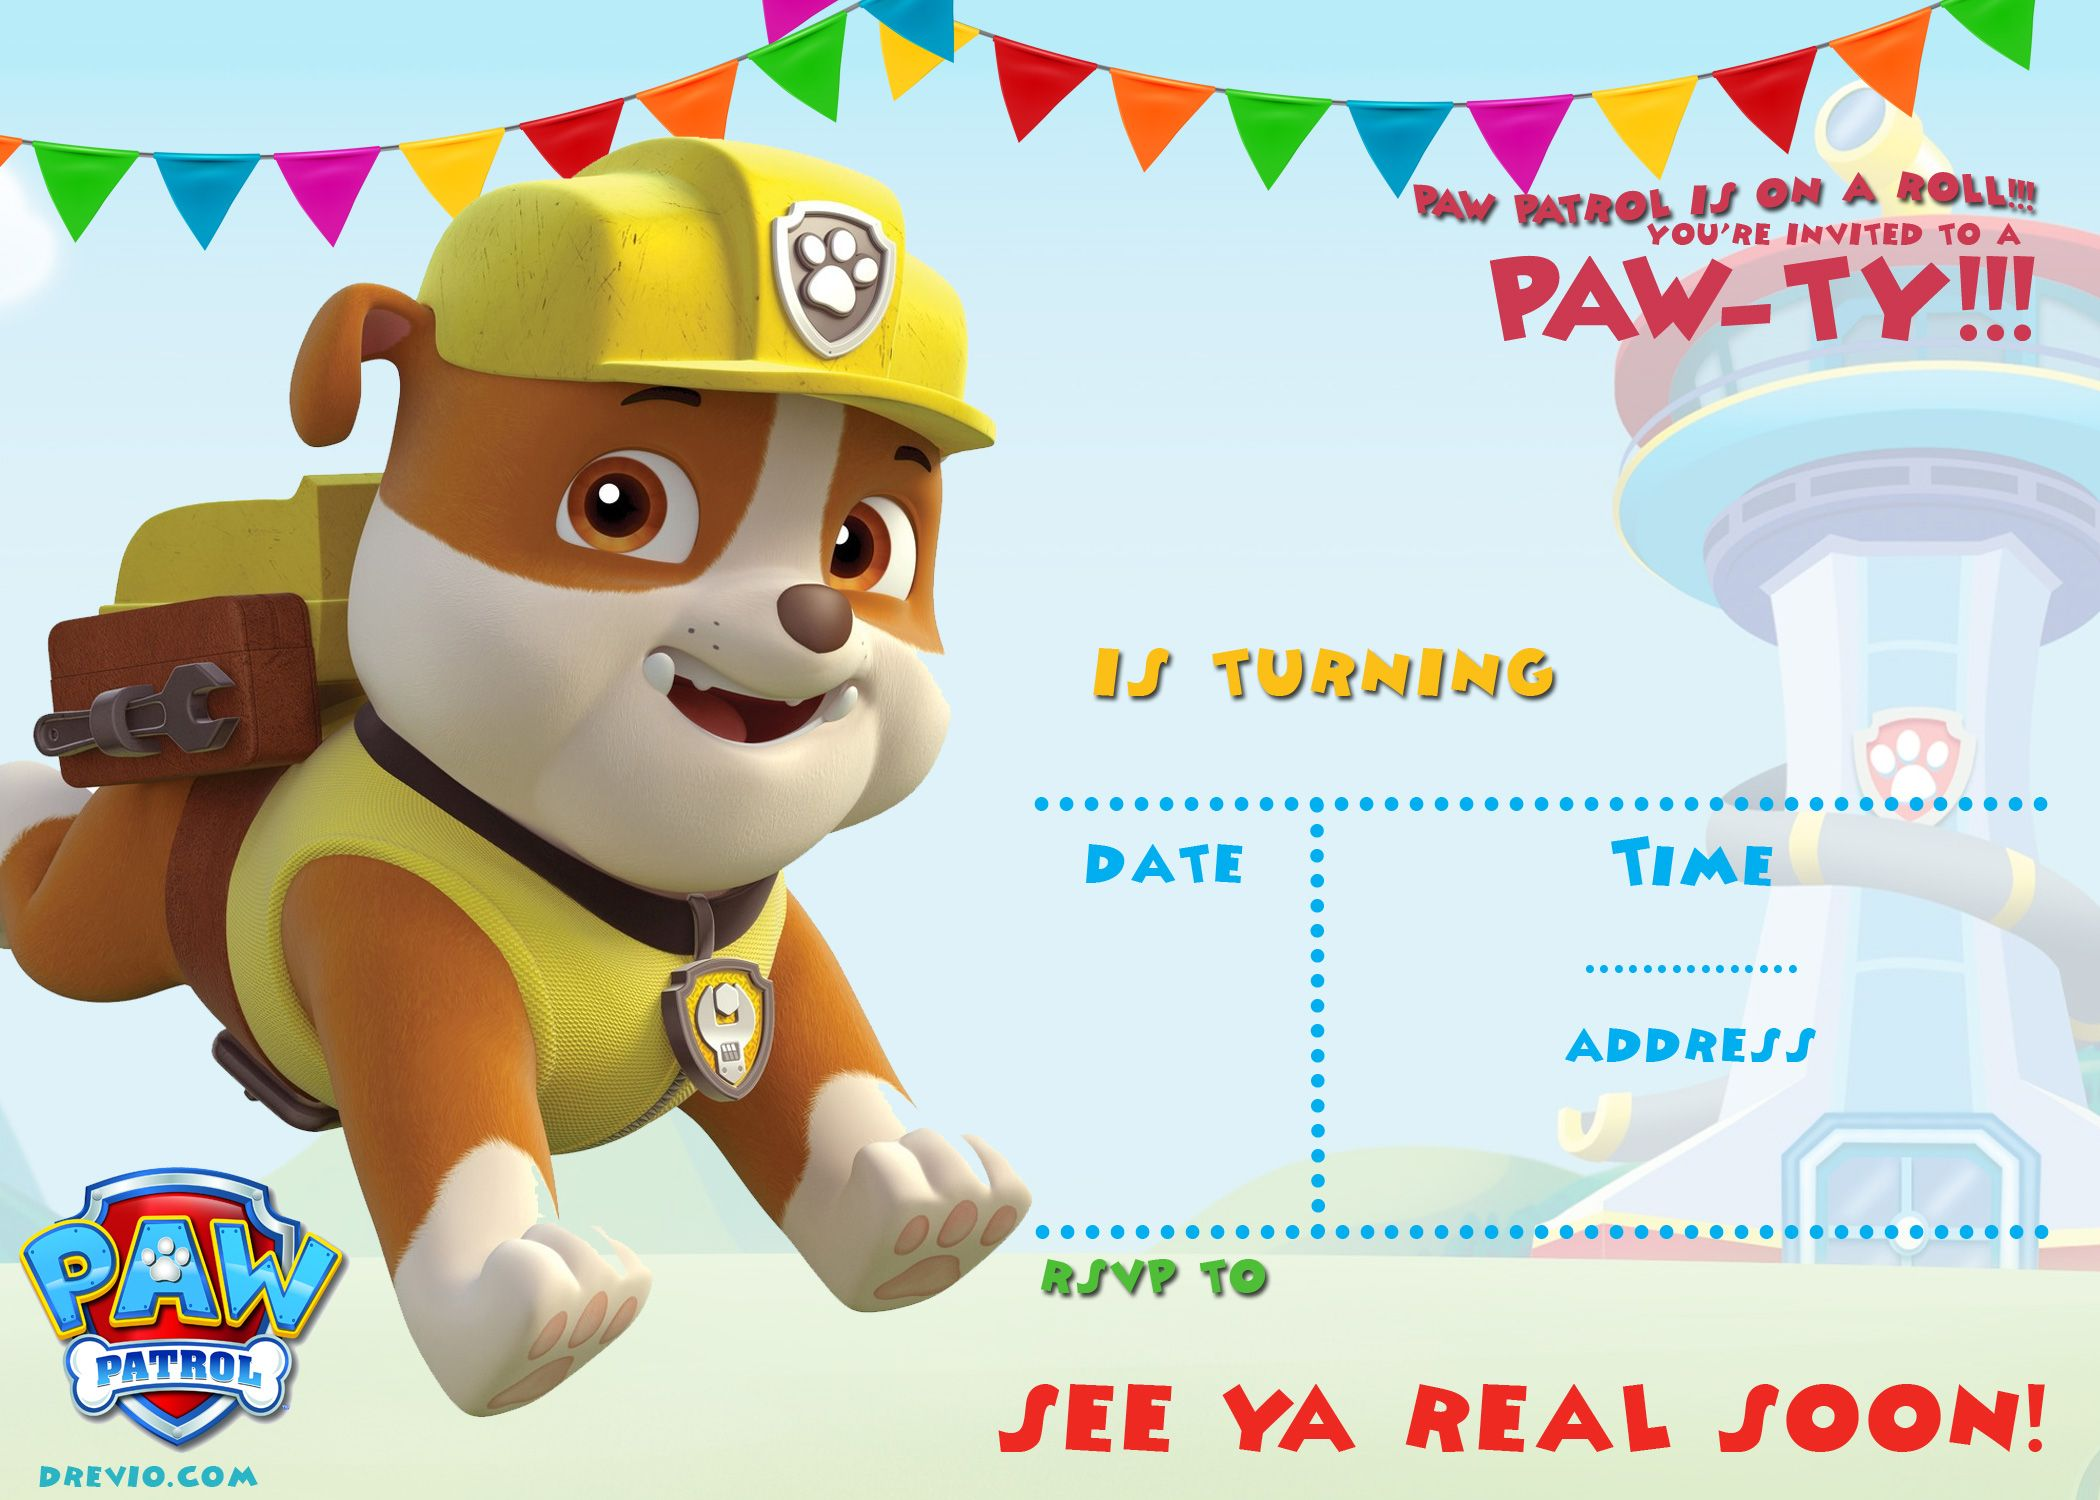 Free Printable Paw Patrol Invitation Template All Characters Drevio Paw Patrol Invitations Paw Patrol Invitations Printables Paw Patrol Birthday Invitations